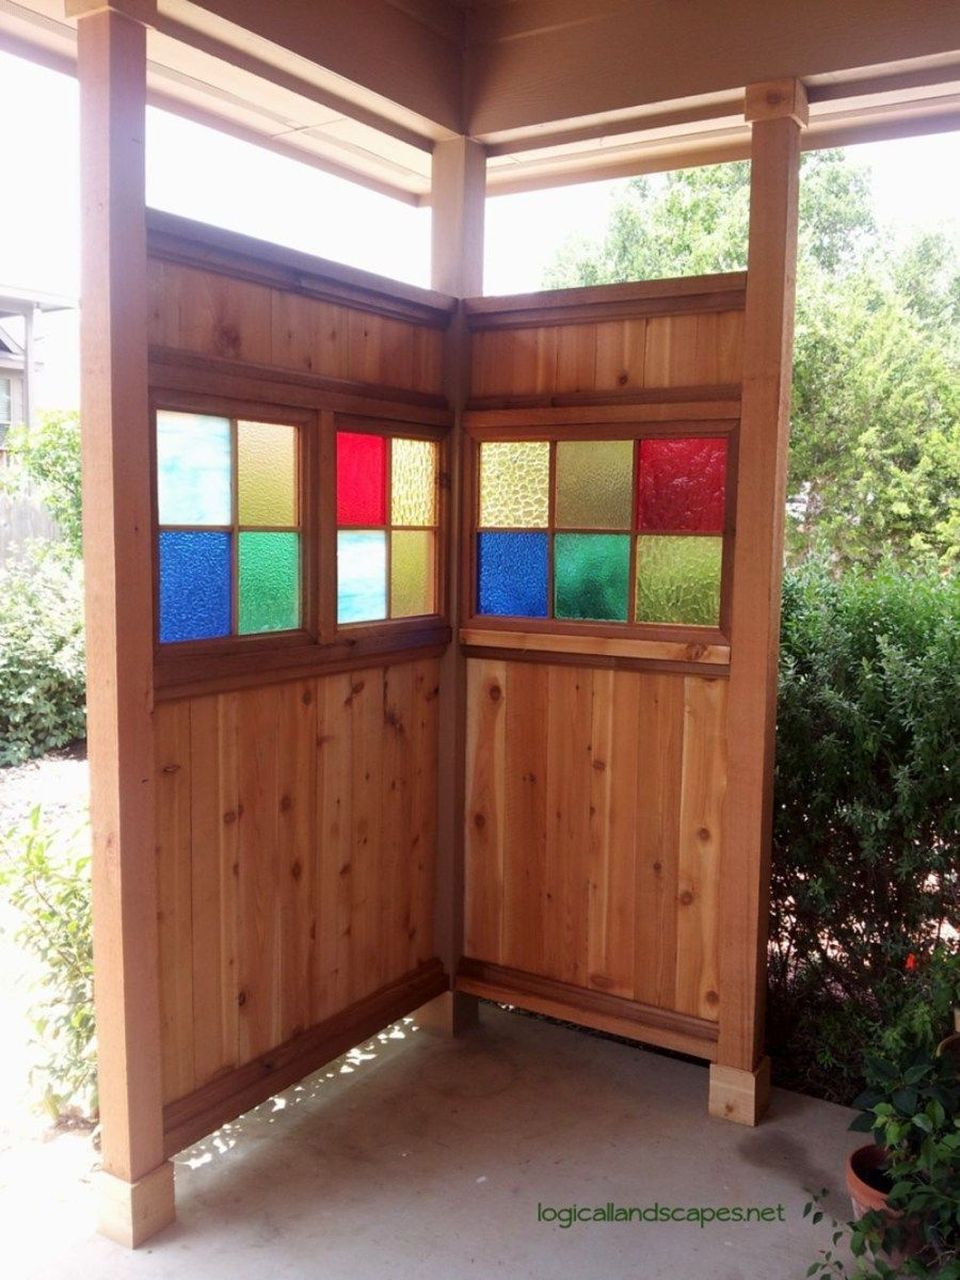 Cool Privacy Fence Wooden Design for Backyard 77 - Hoommy.com